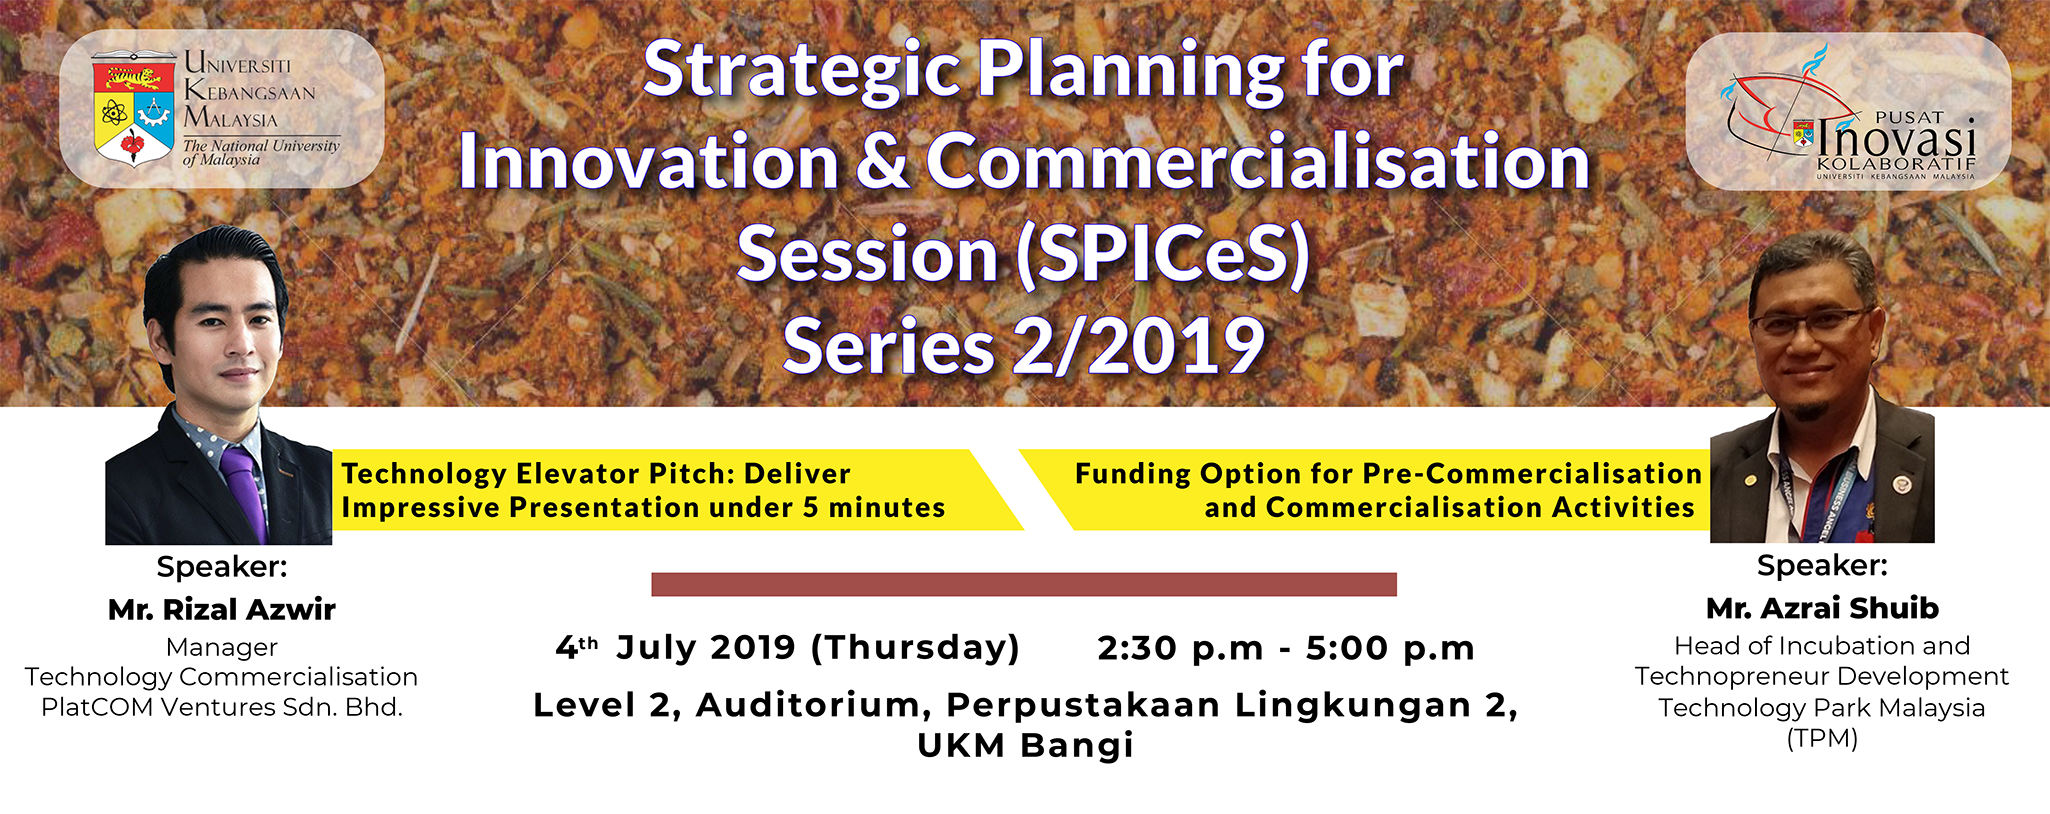 Strategic Planning for Innovation and Commercialisation Session Series 2/2019